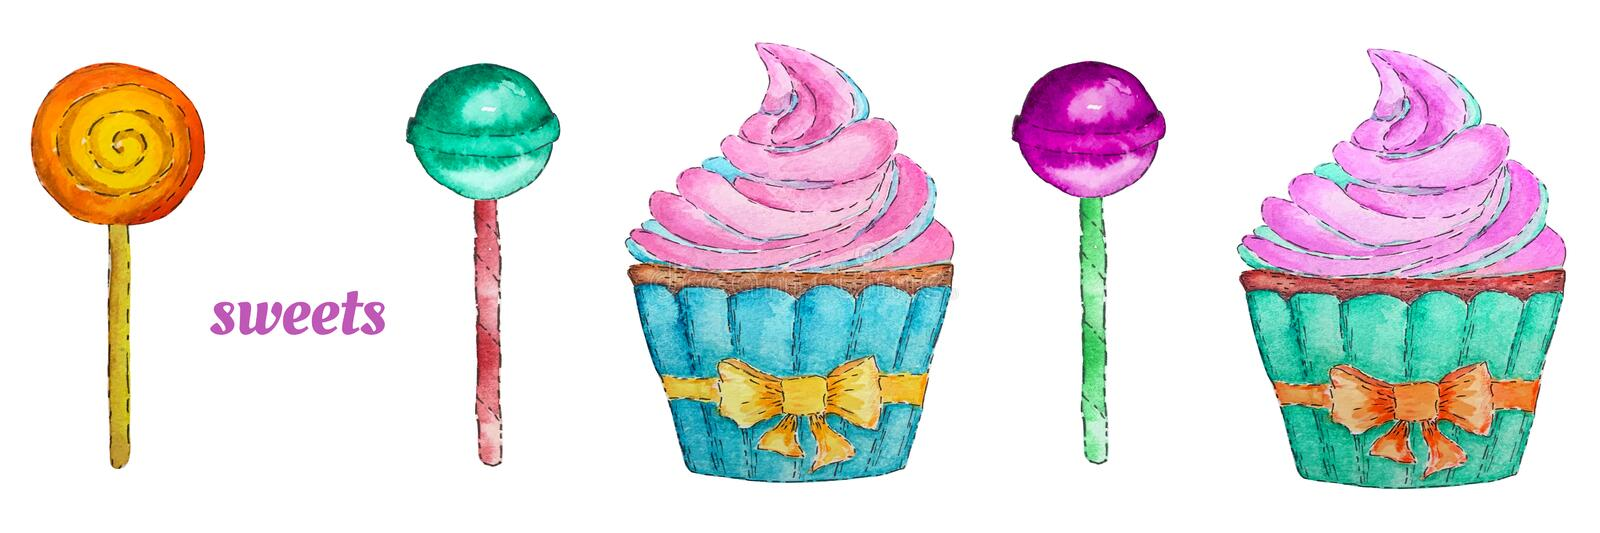 Sweets set with cupcake, lollipop and chupa chups. Colorful watercolor elements stock illustration